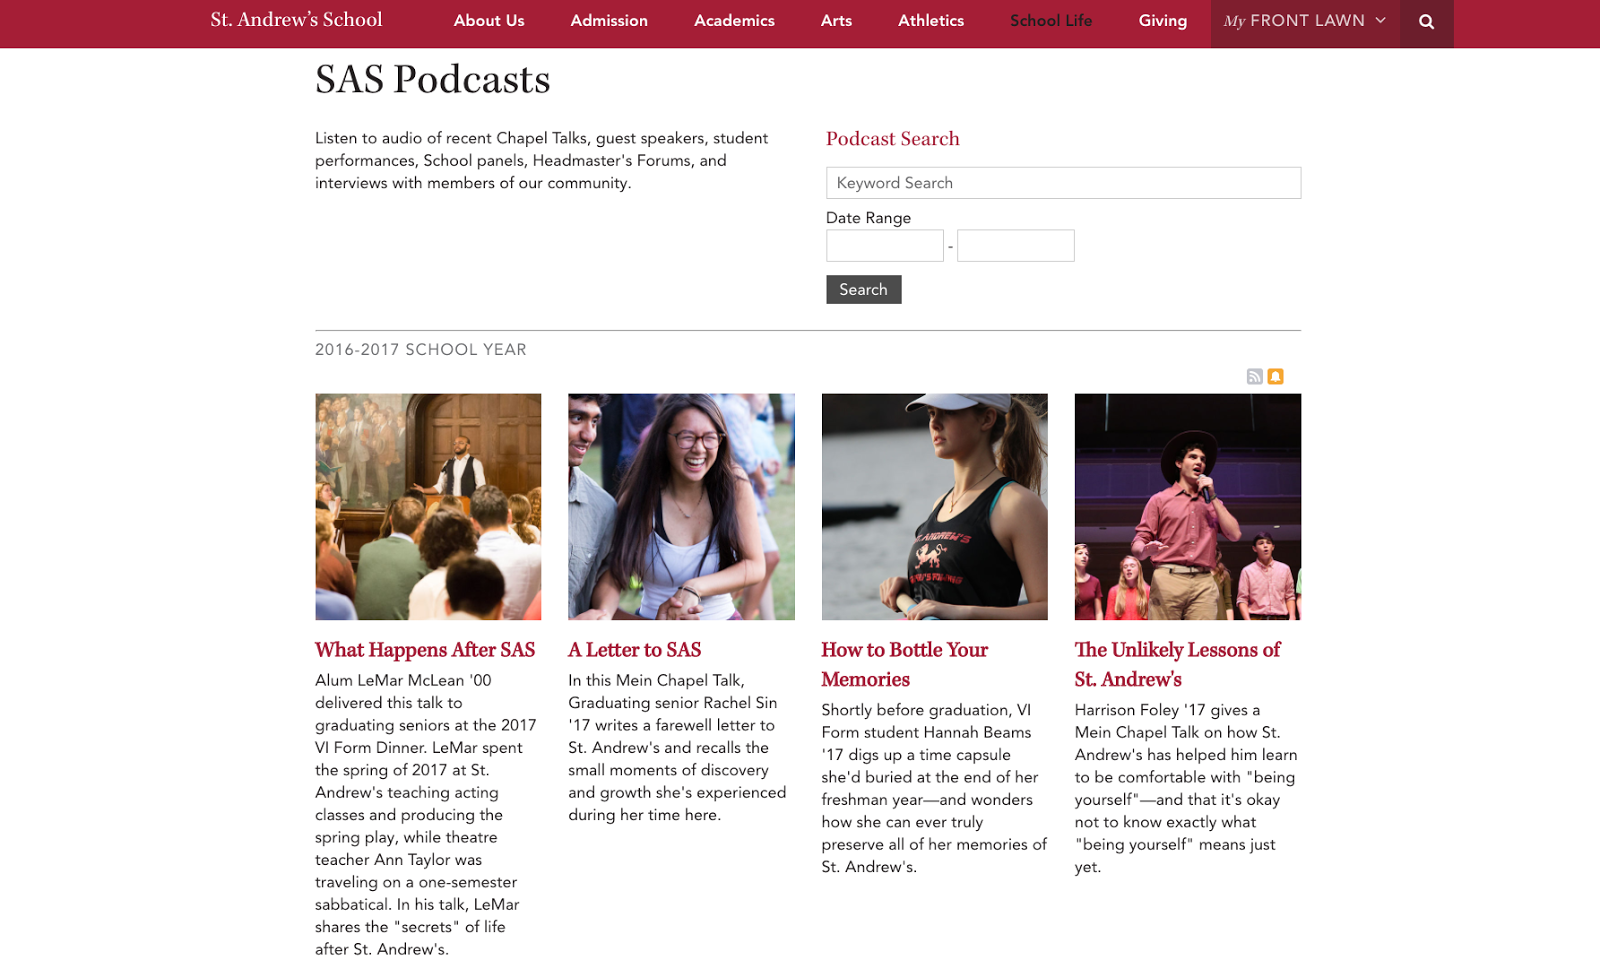 St. Andrew's School Podcast Page